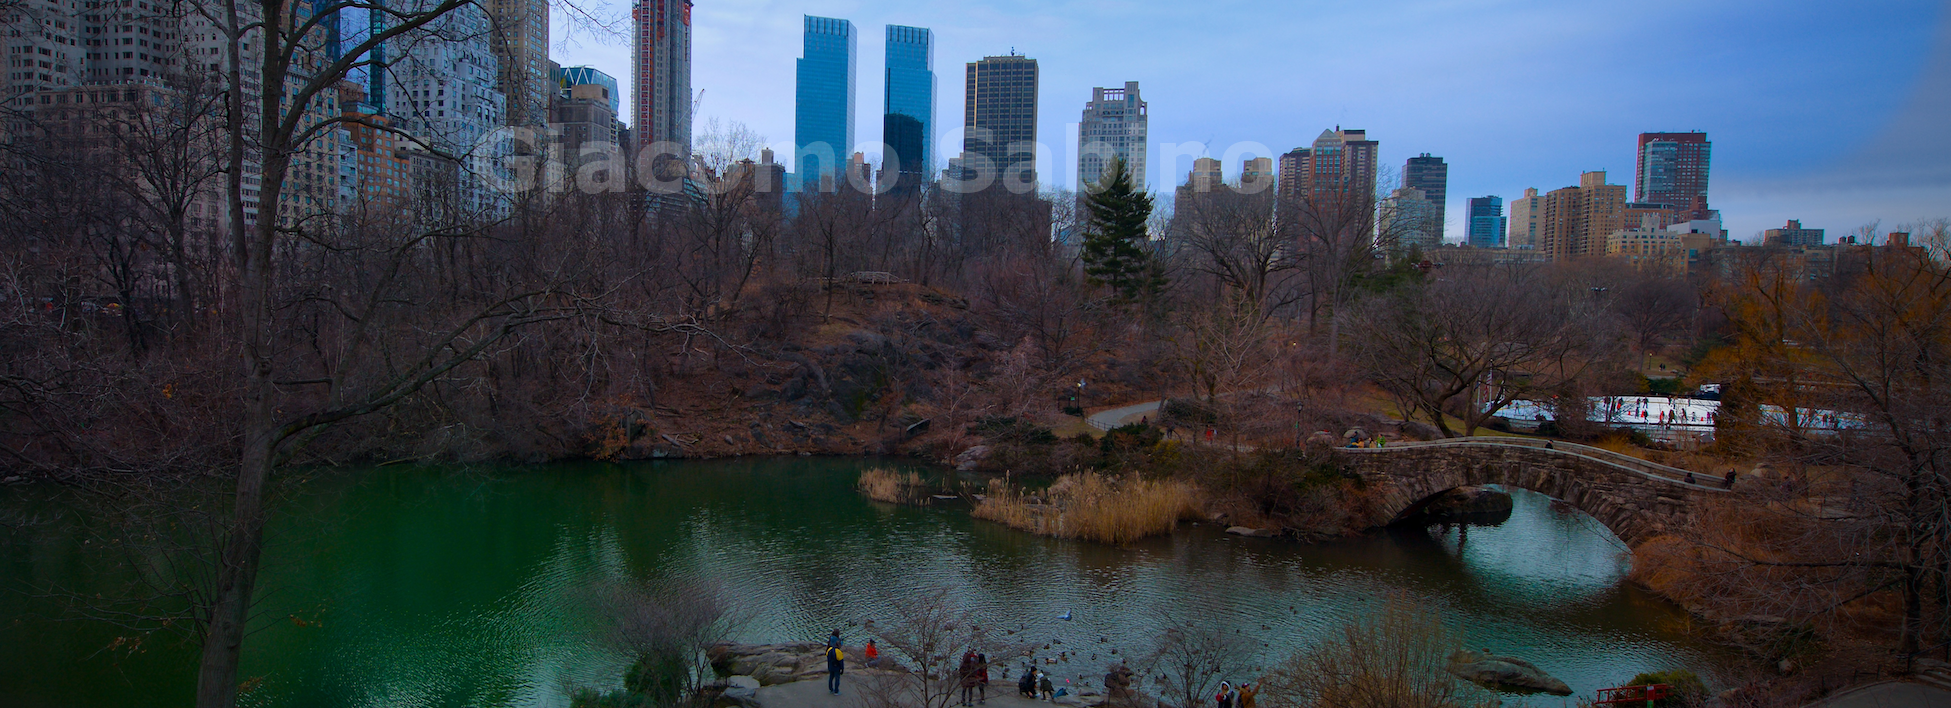 NYC Central Park-f